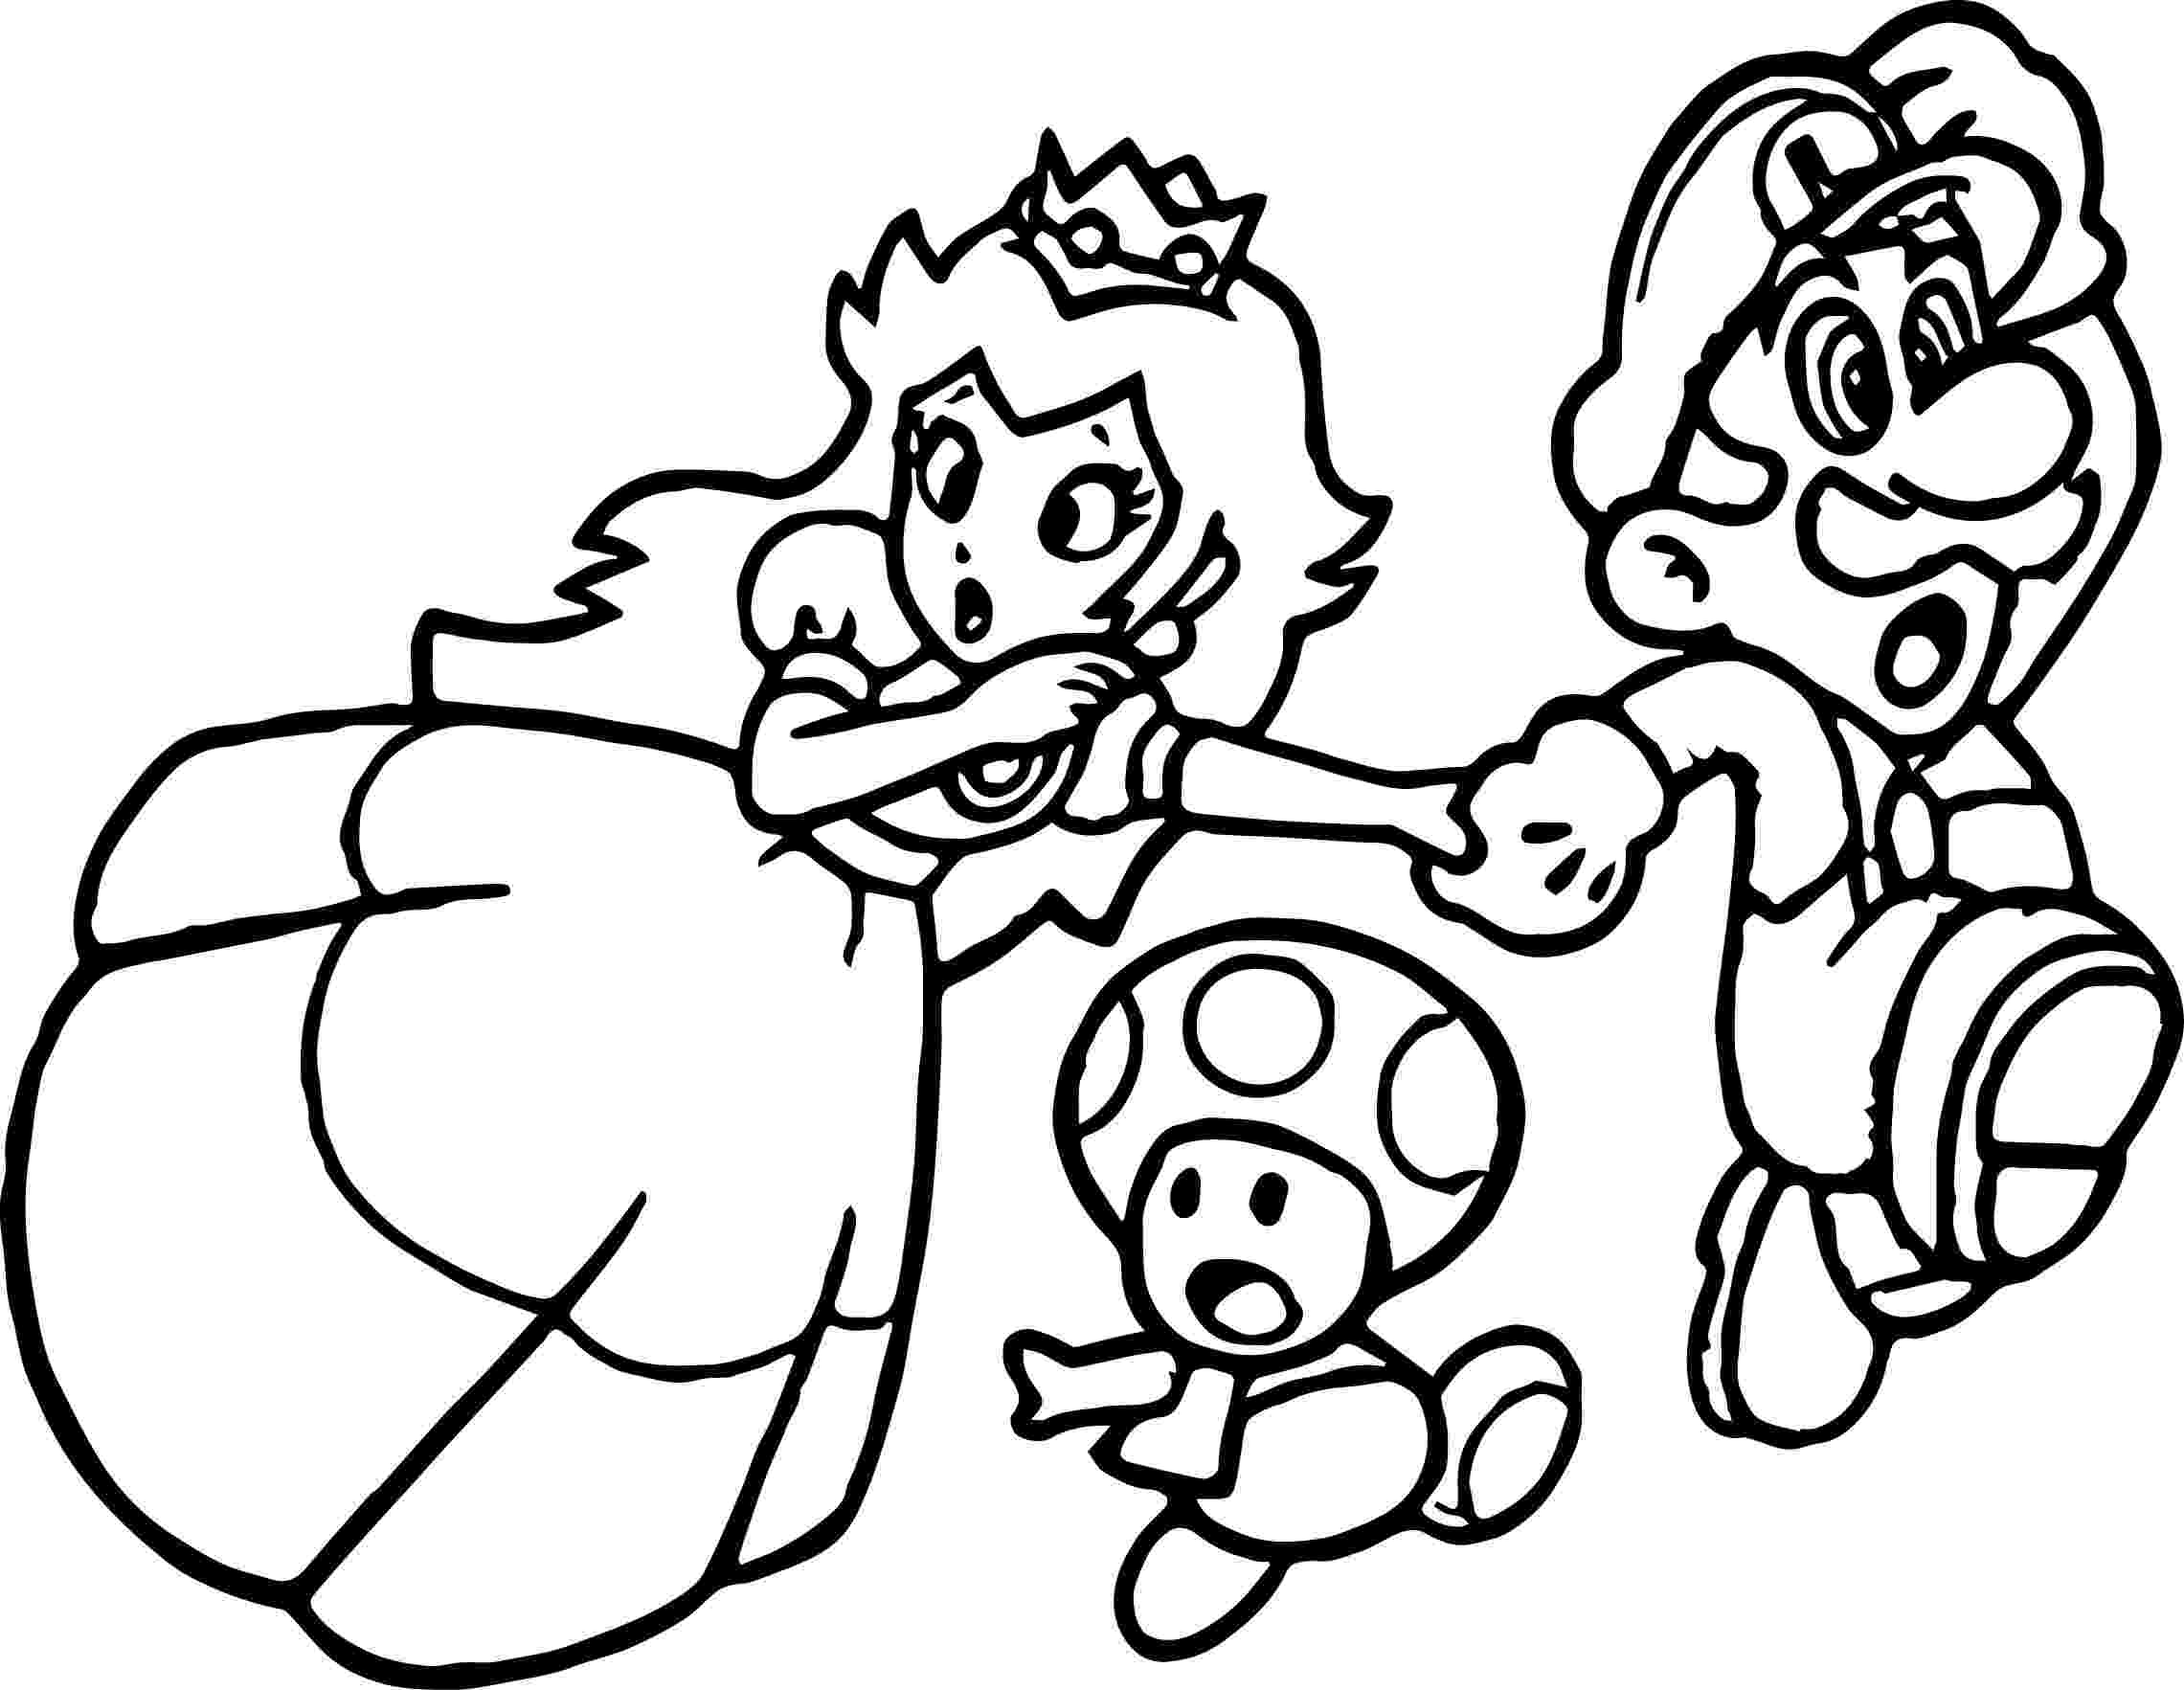 super mario odyssey coloring pages funny super mario odyssey coloring pages clipart free mario super coloring odyssey pages